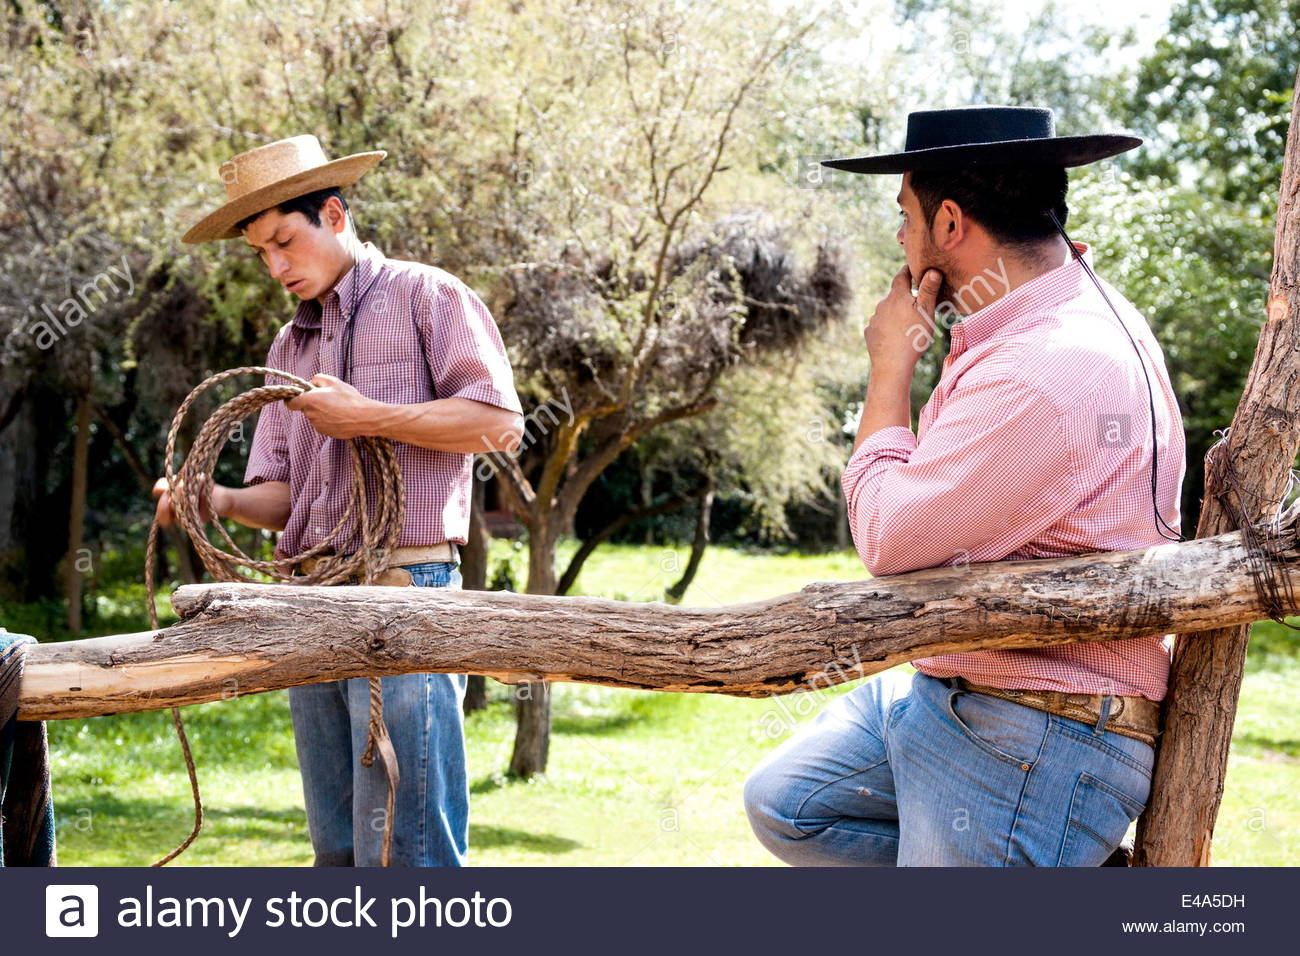 Two Chilean cowboys conversing outside stable on a horse ranch in El Toyo region of Cajon del Maipo, Chile, South - Stock Image